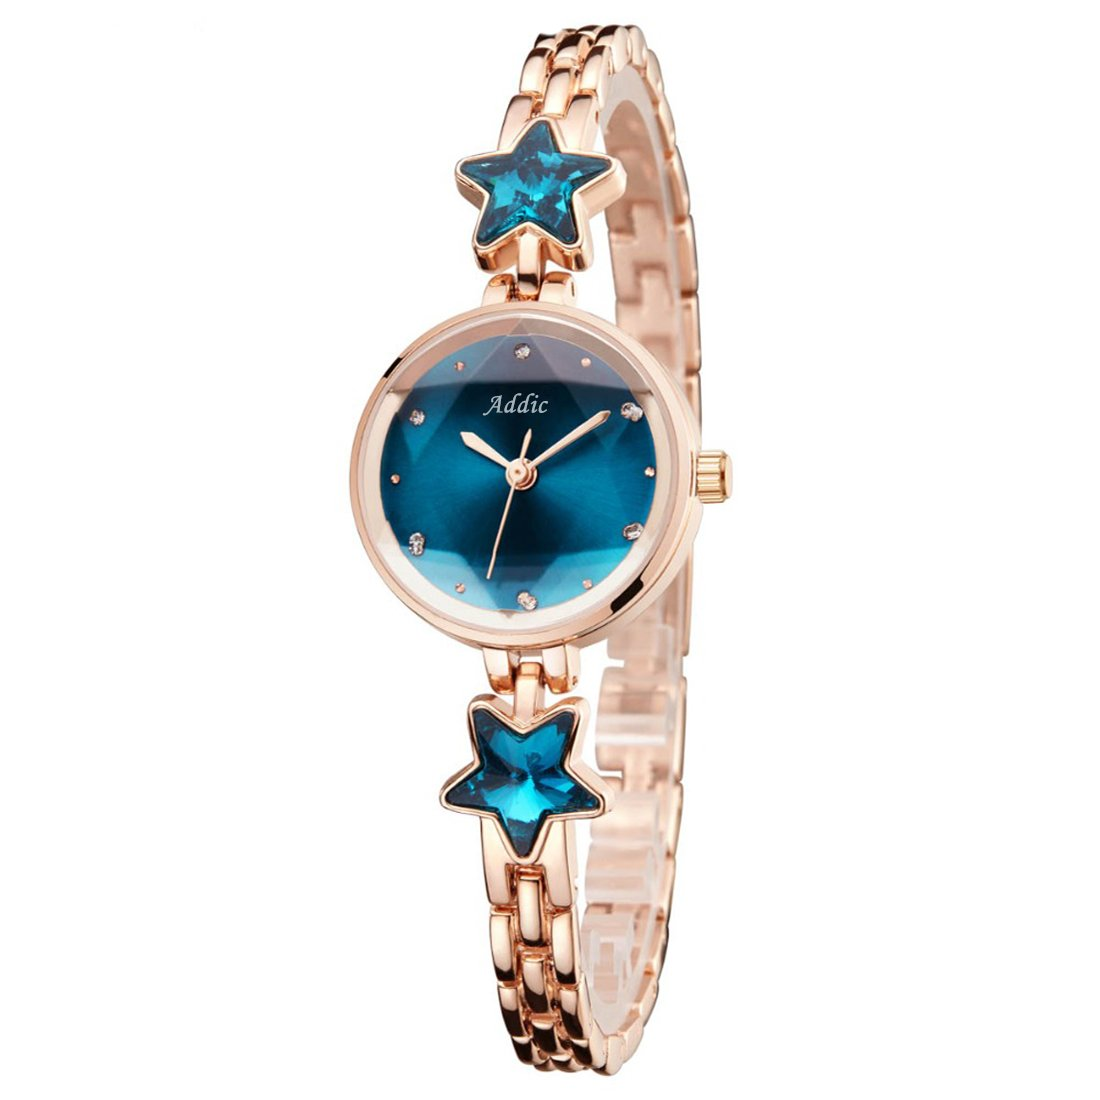 Heritage & Charm Analogue Blue Dial Women's Watch